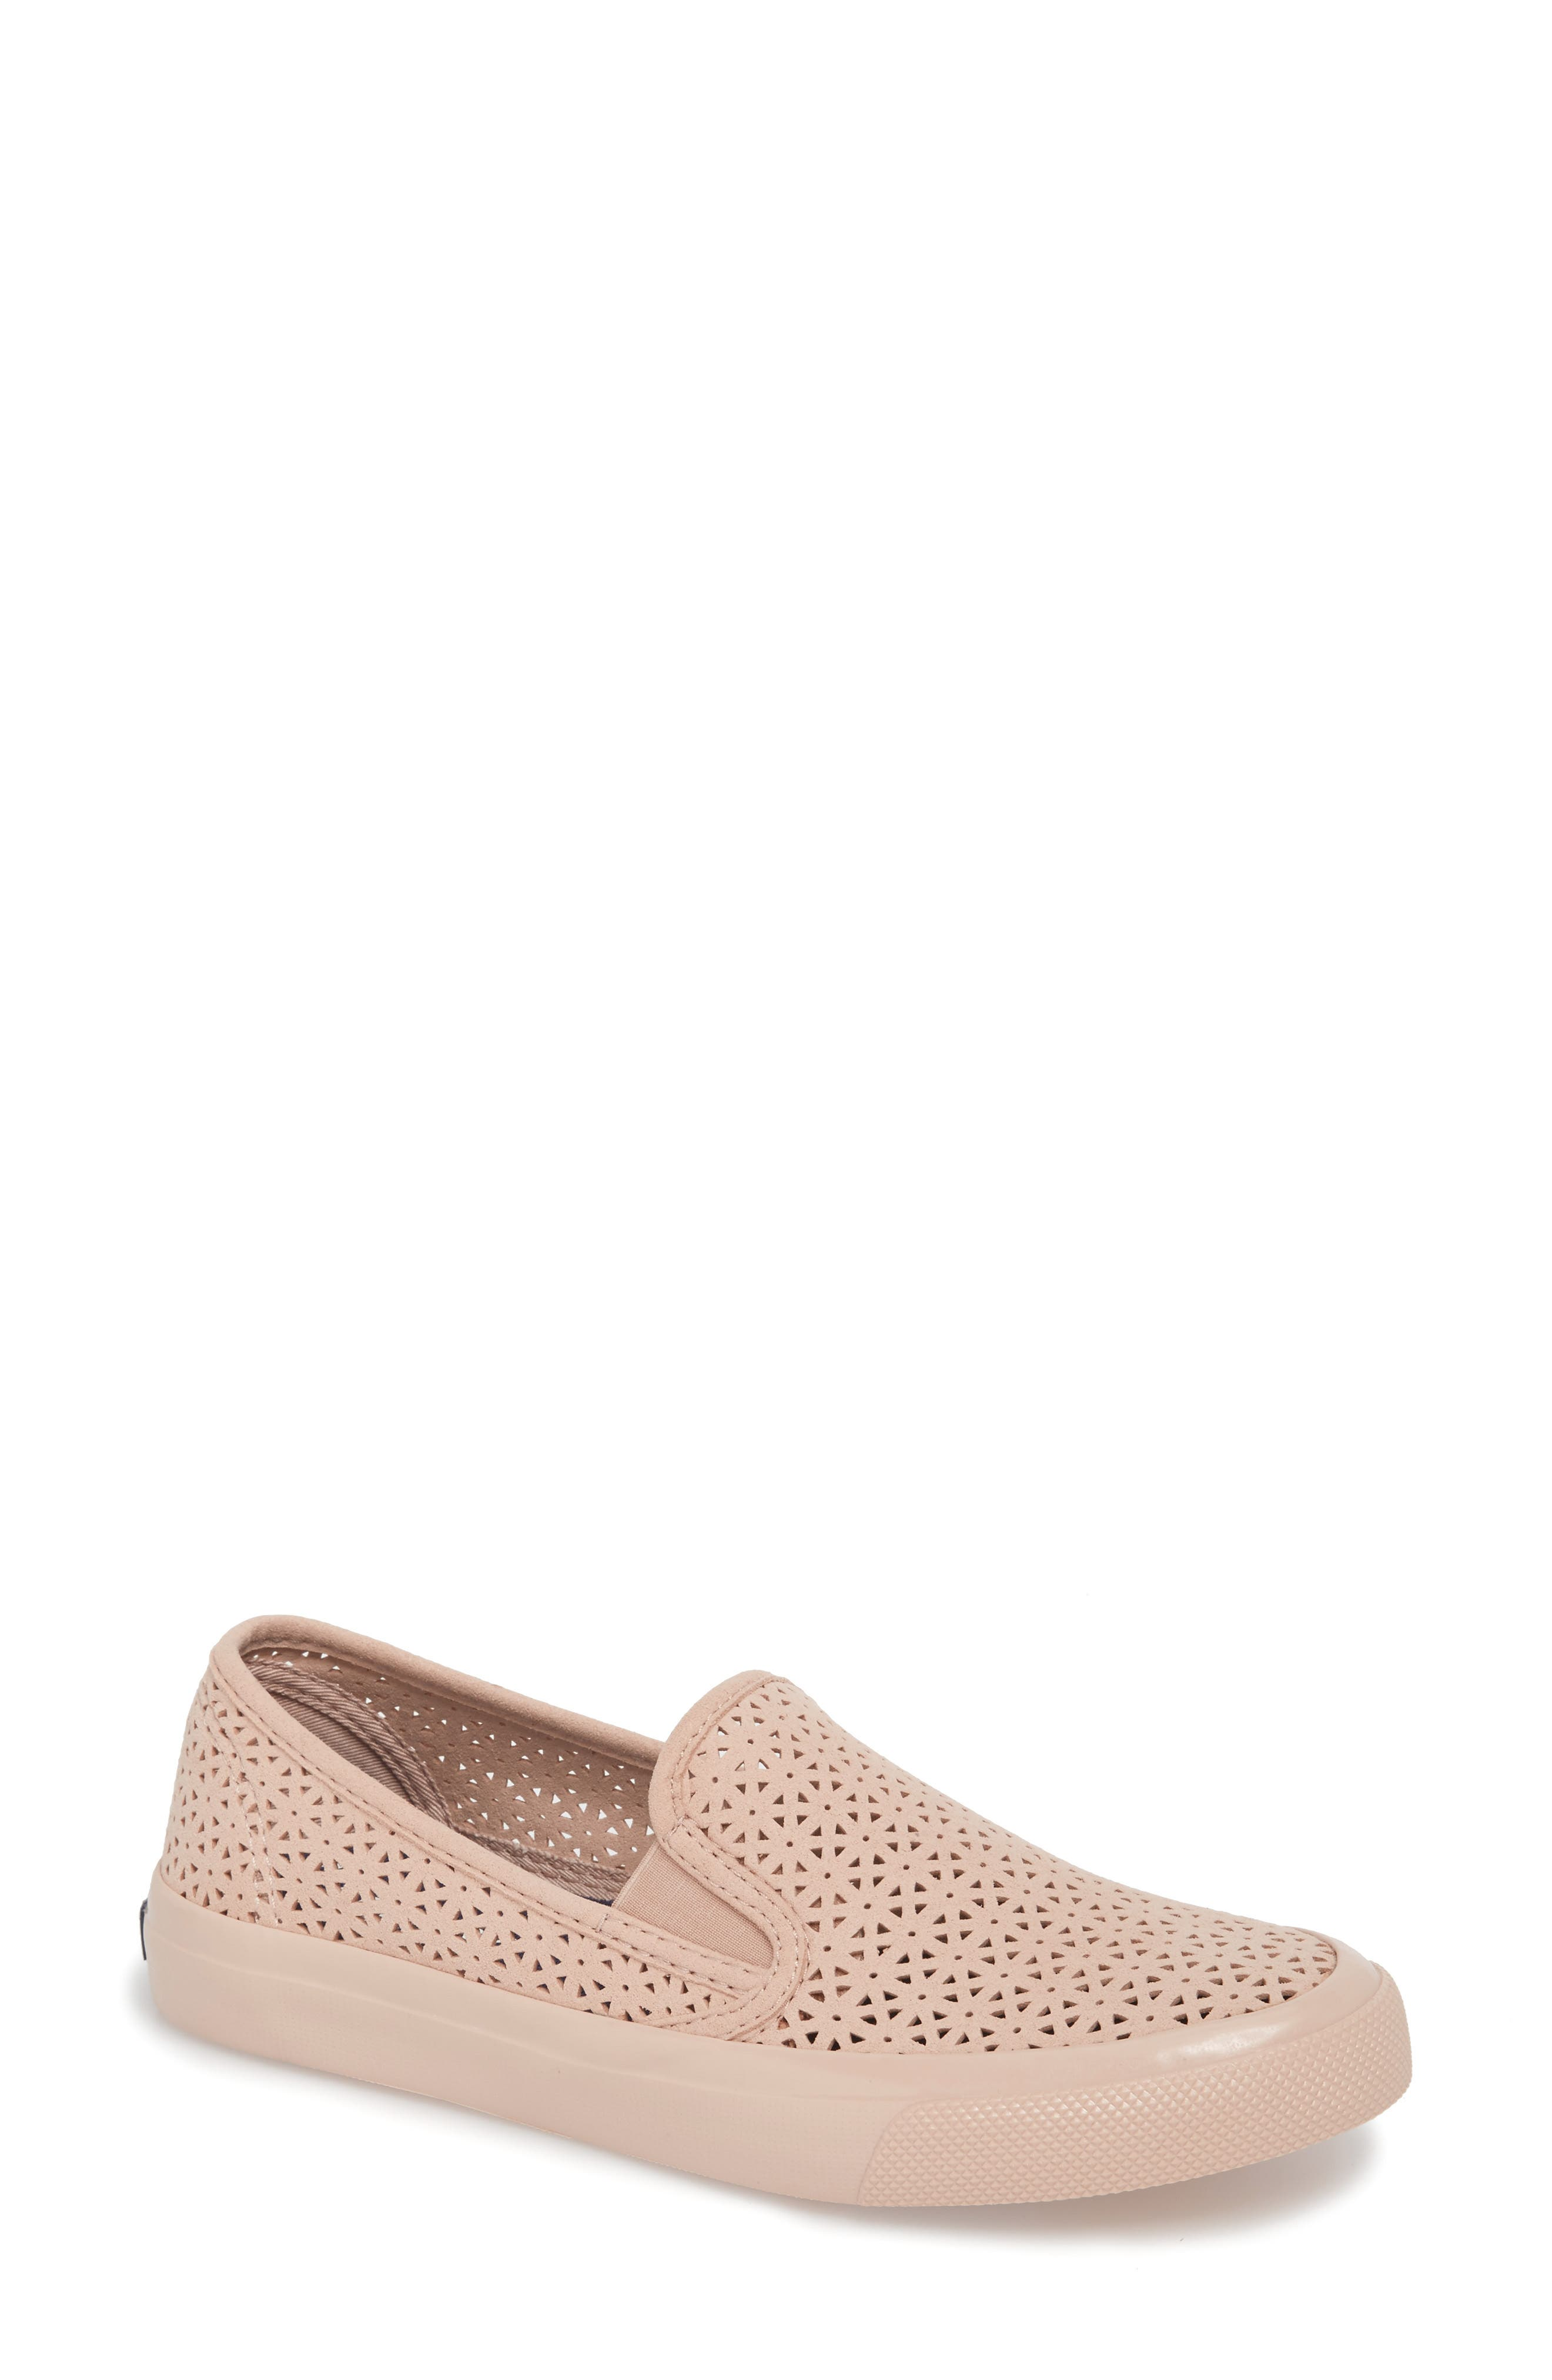 Sperry Seaside Nautical Perforated Slip-On Sneaker (Women)